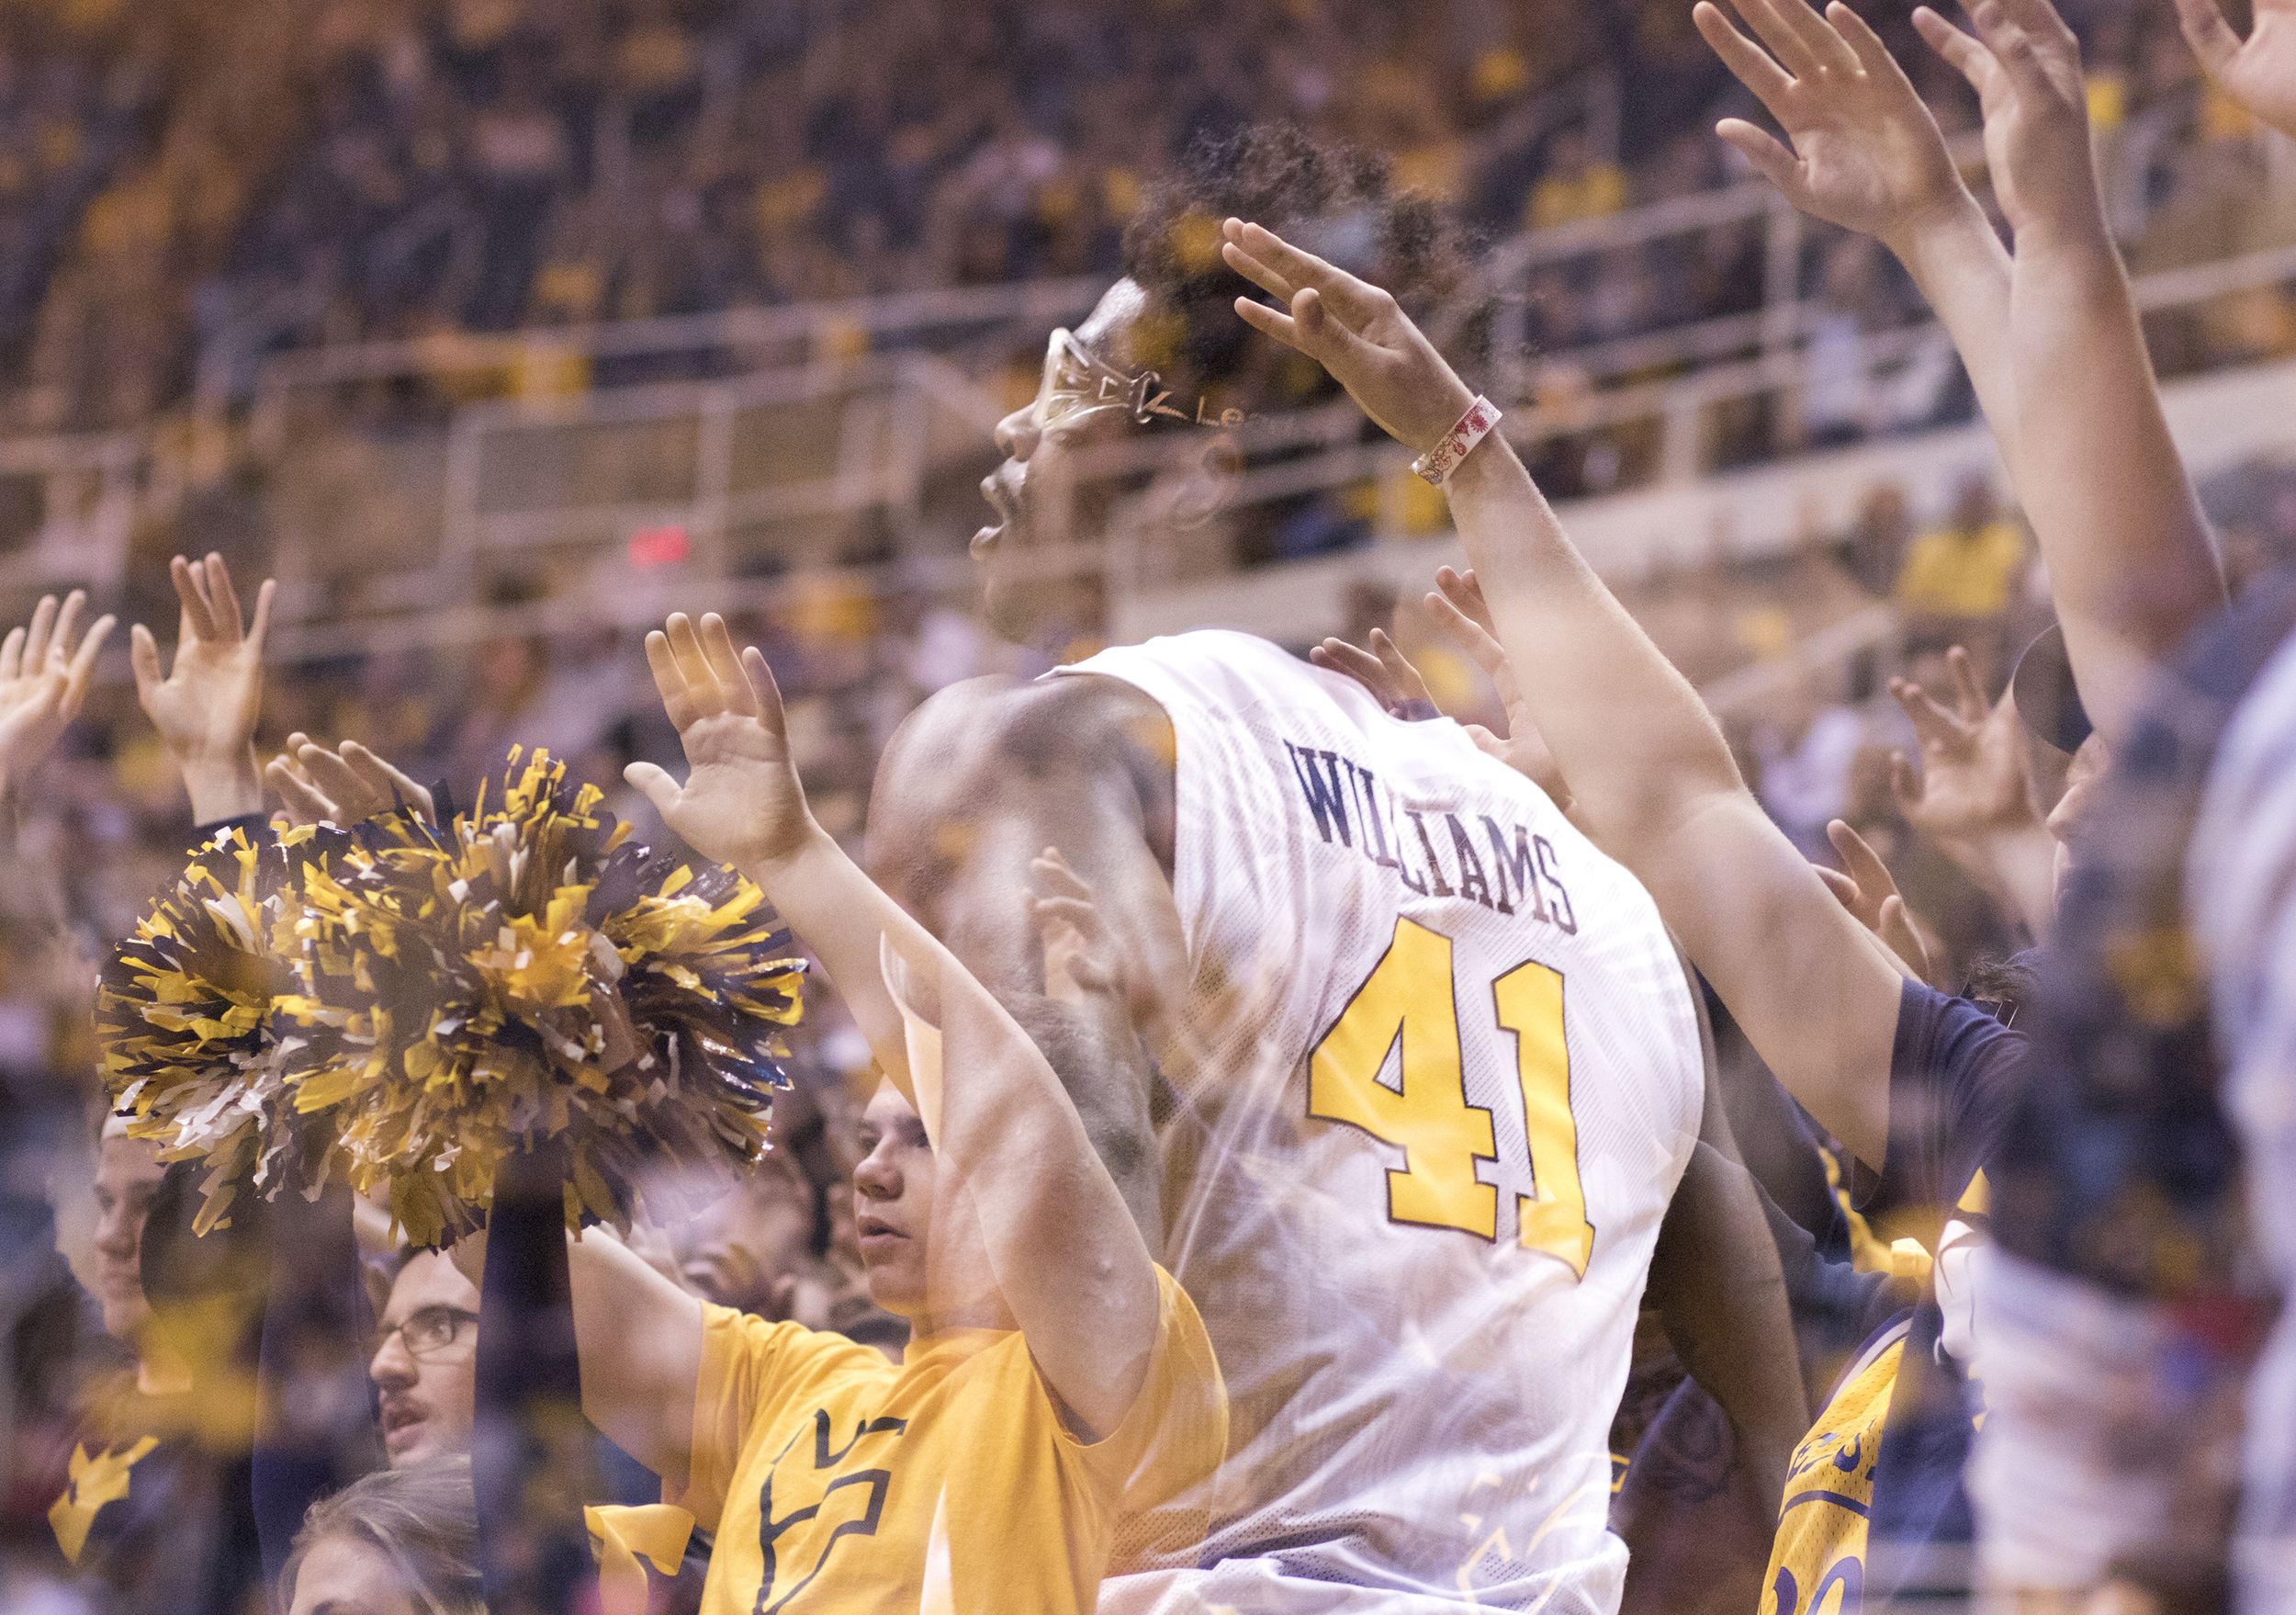 Devin Williams and the WVU student section watch as the Mountaineers are at the foul line.